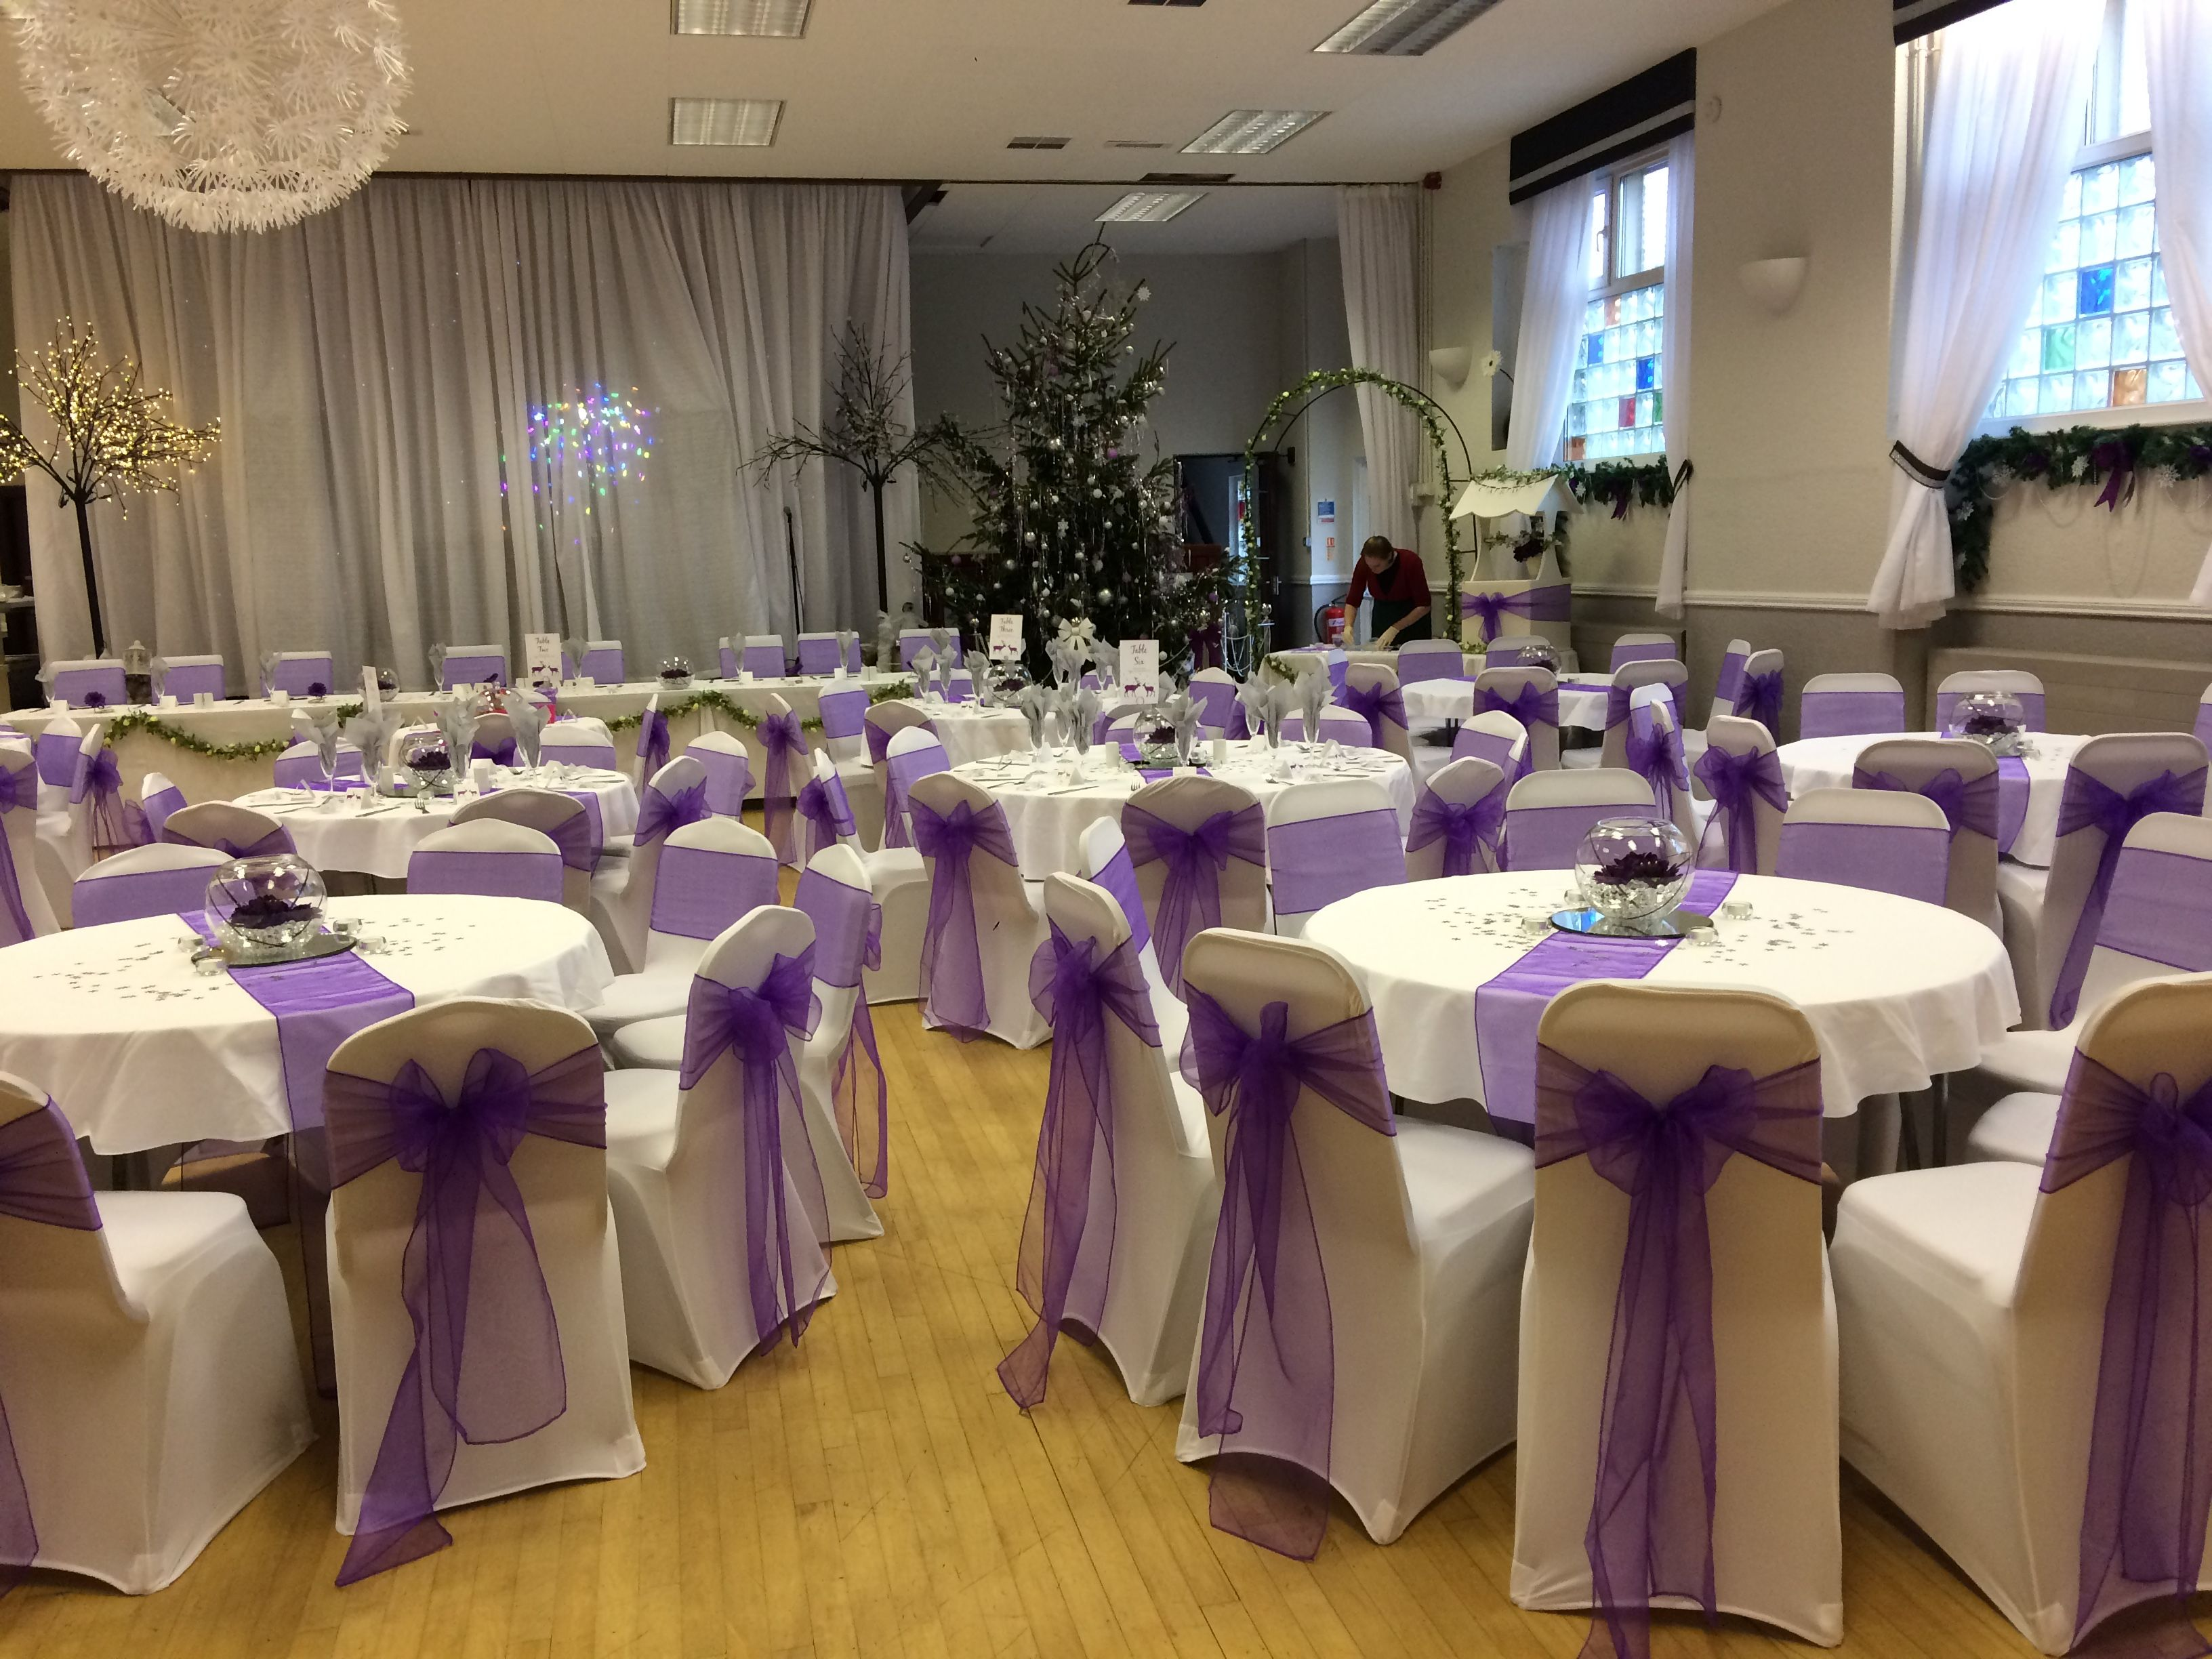 wedding chair covers swansea carex transport review white and cadburys purple sashes at a in ammanford south wales venue dressed by www affinityeventdecorators com